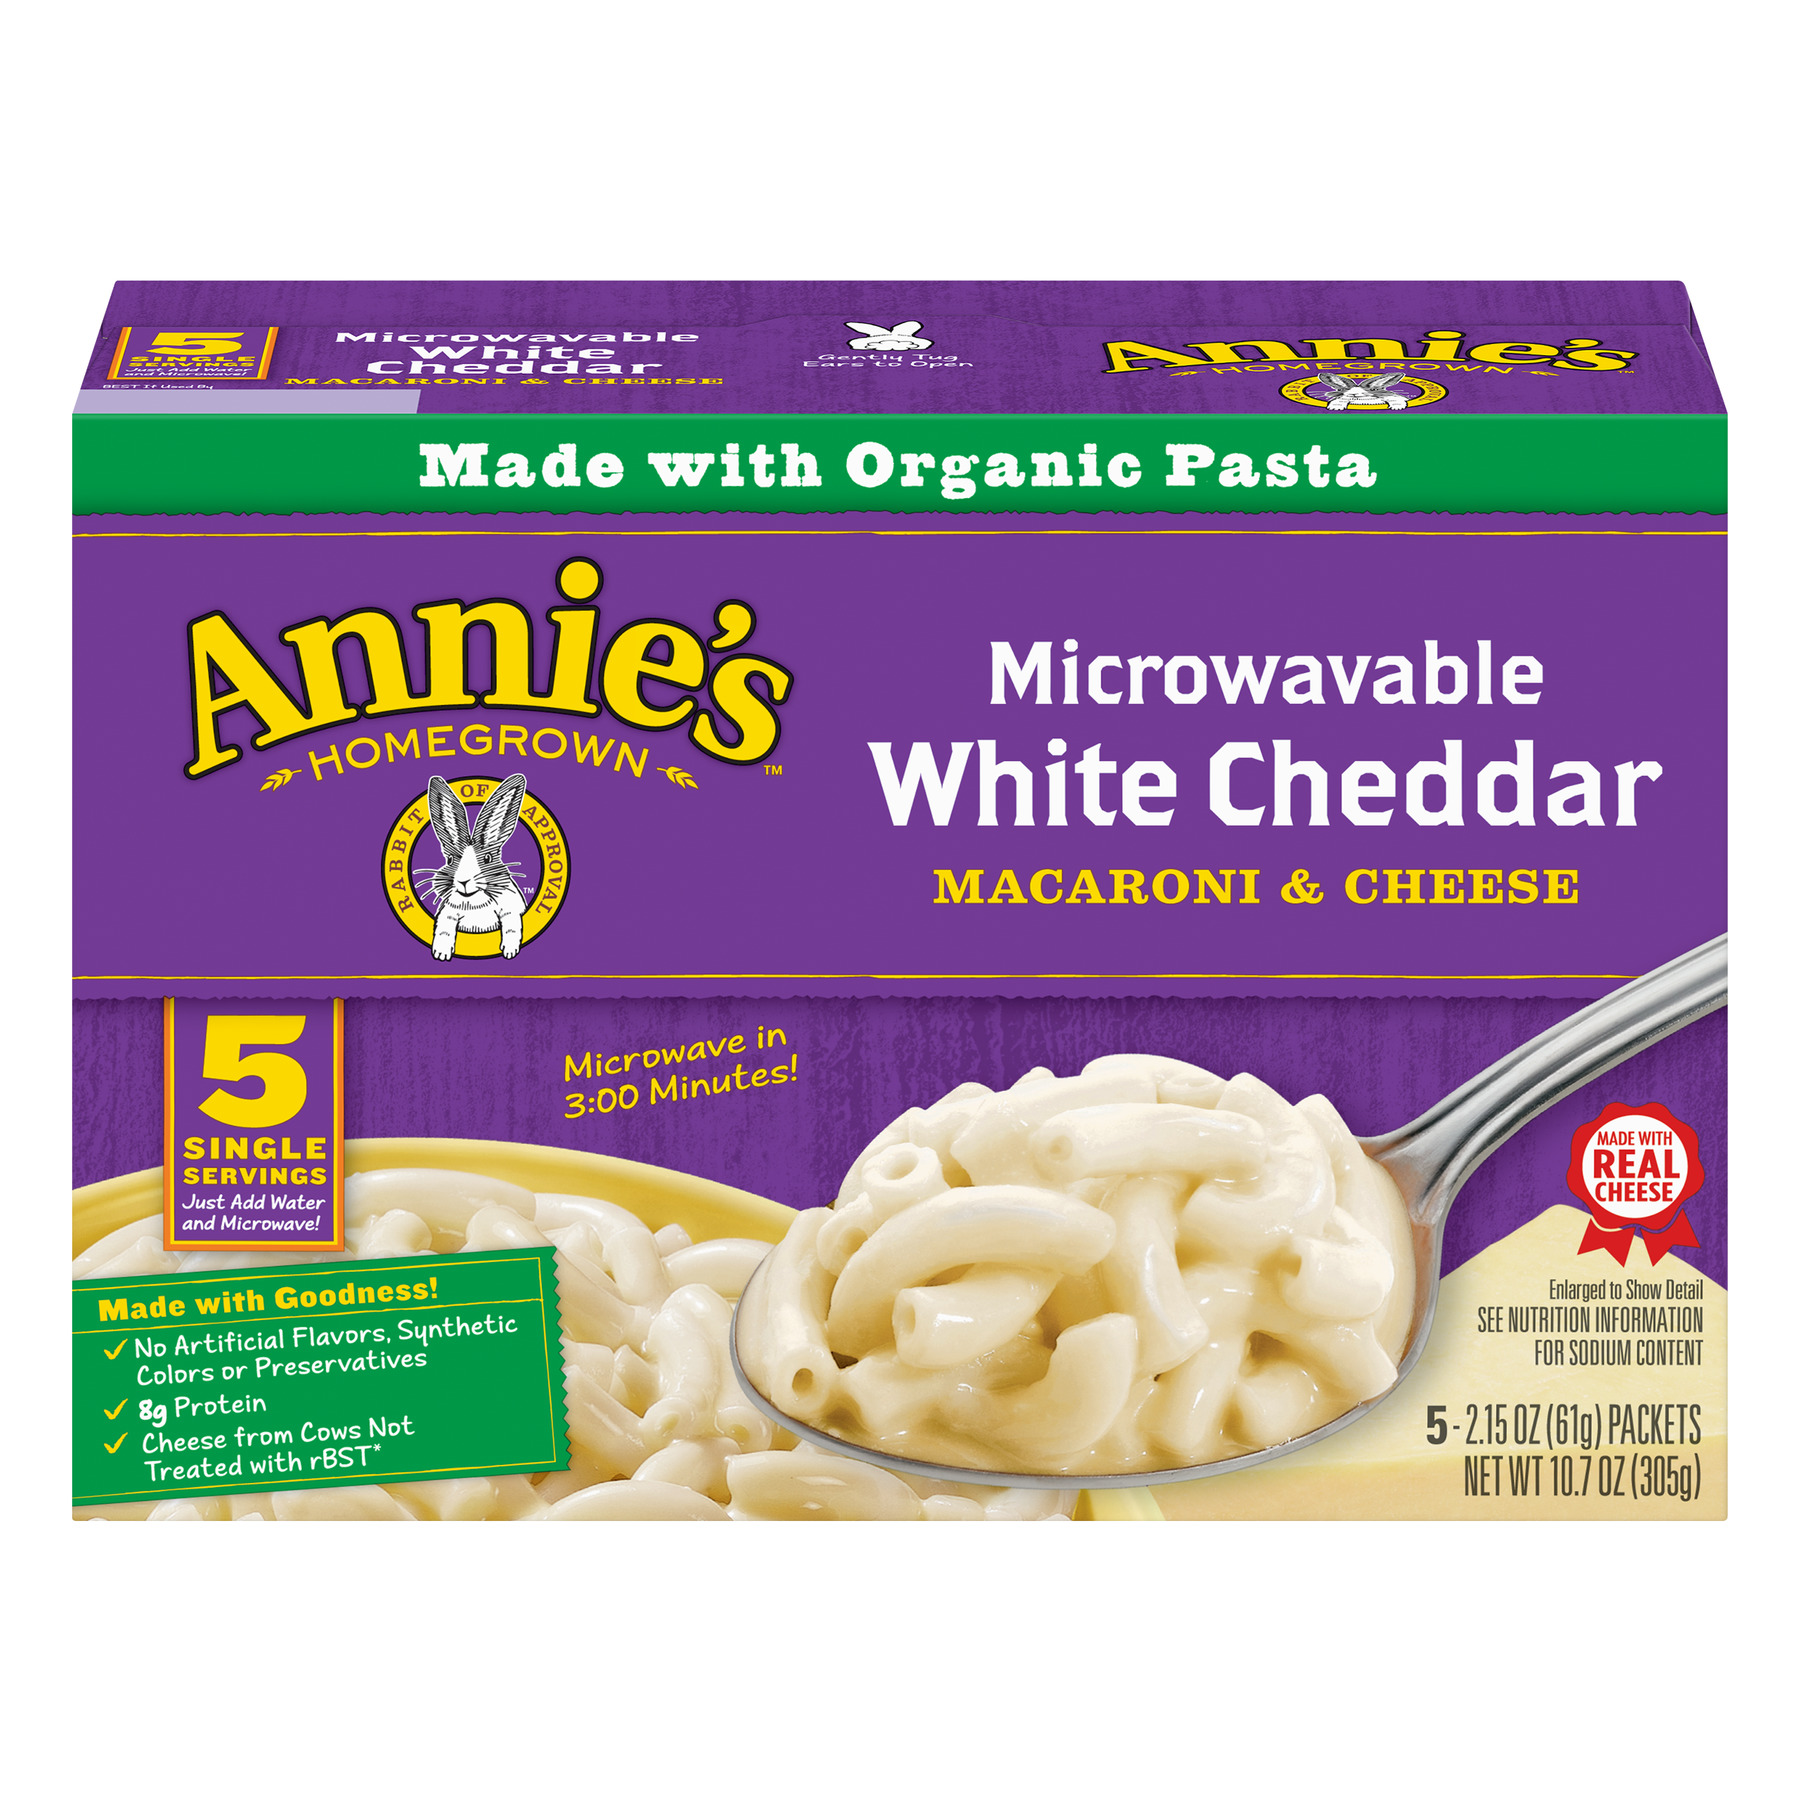 Annie's Macaroni & Cheese, White Cheddar Microwavable Mac and Cheese, 5 Packets, 2.15 oz Each